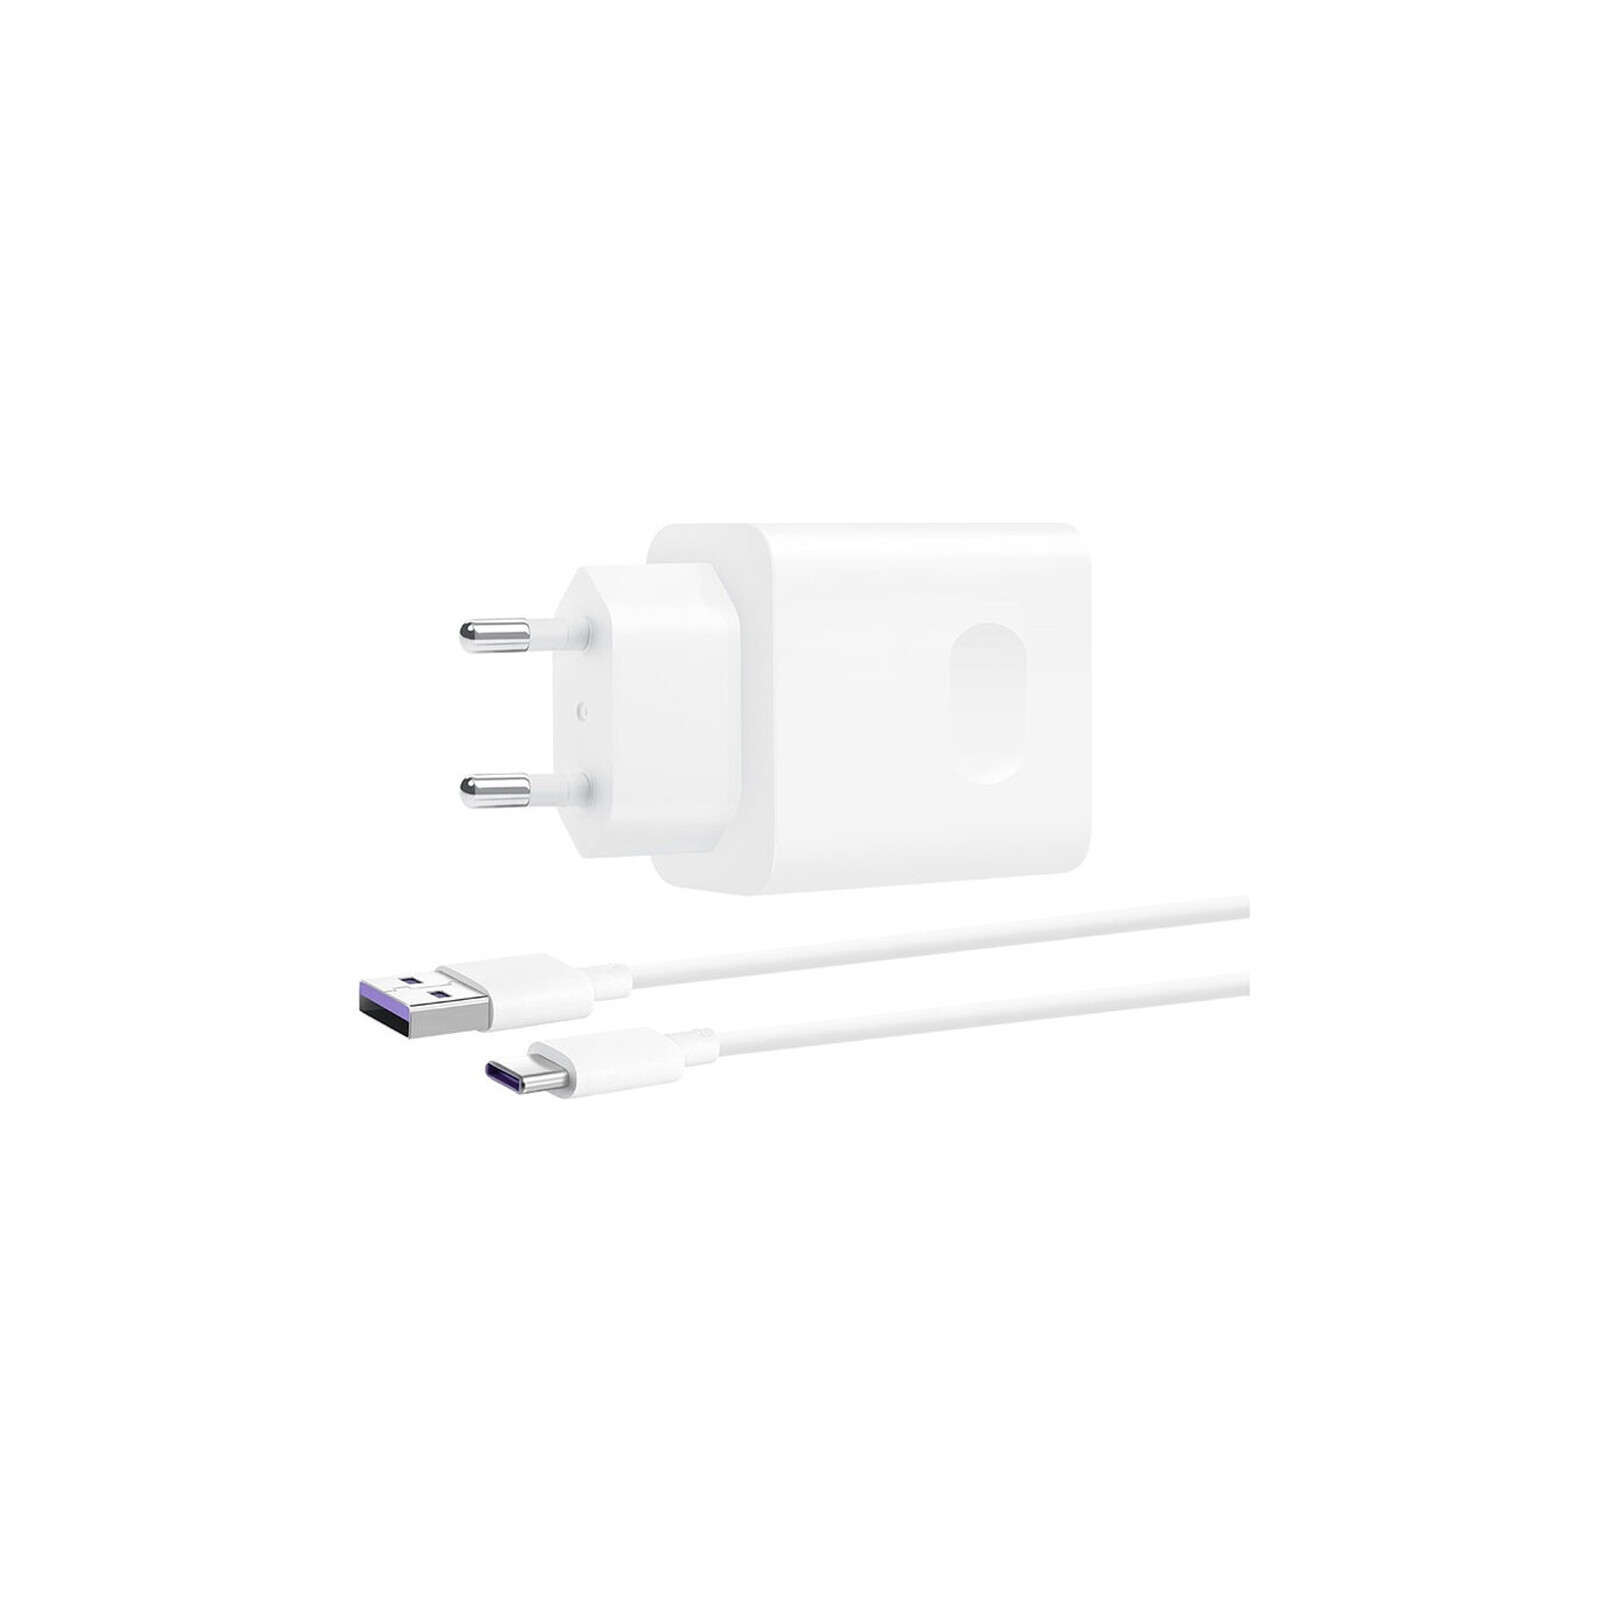 Huawei Charger 40W